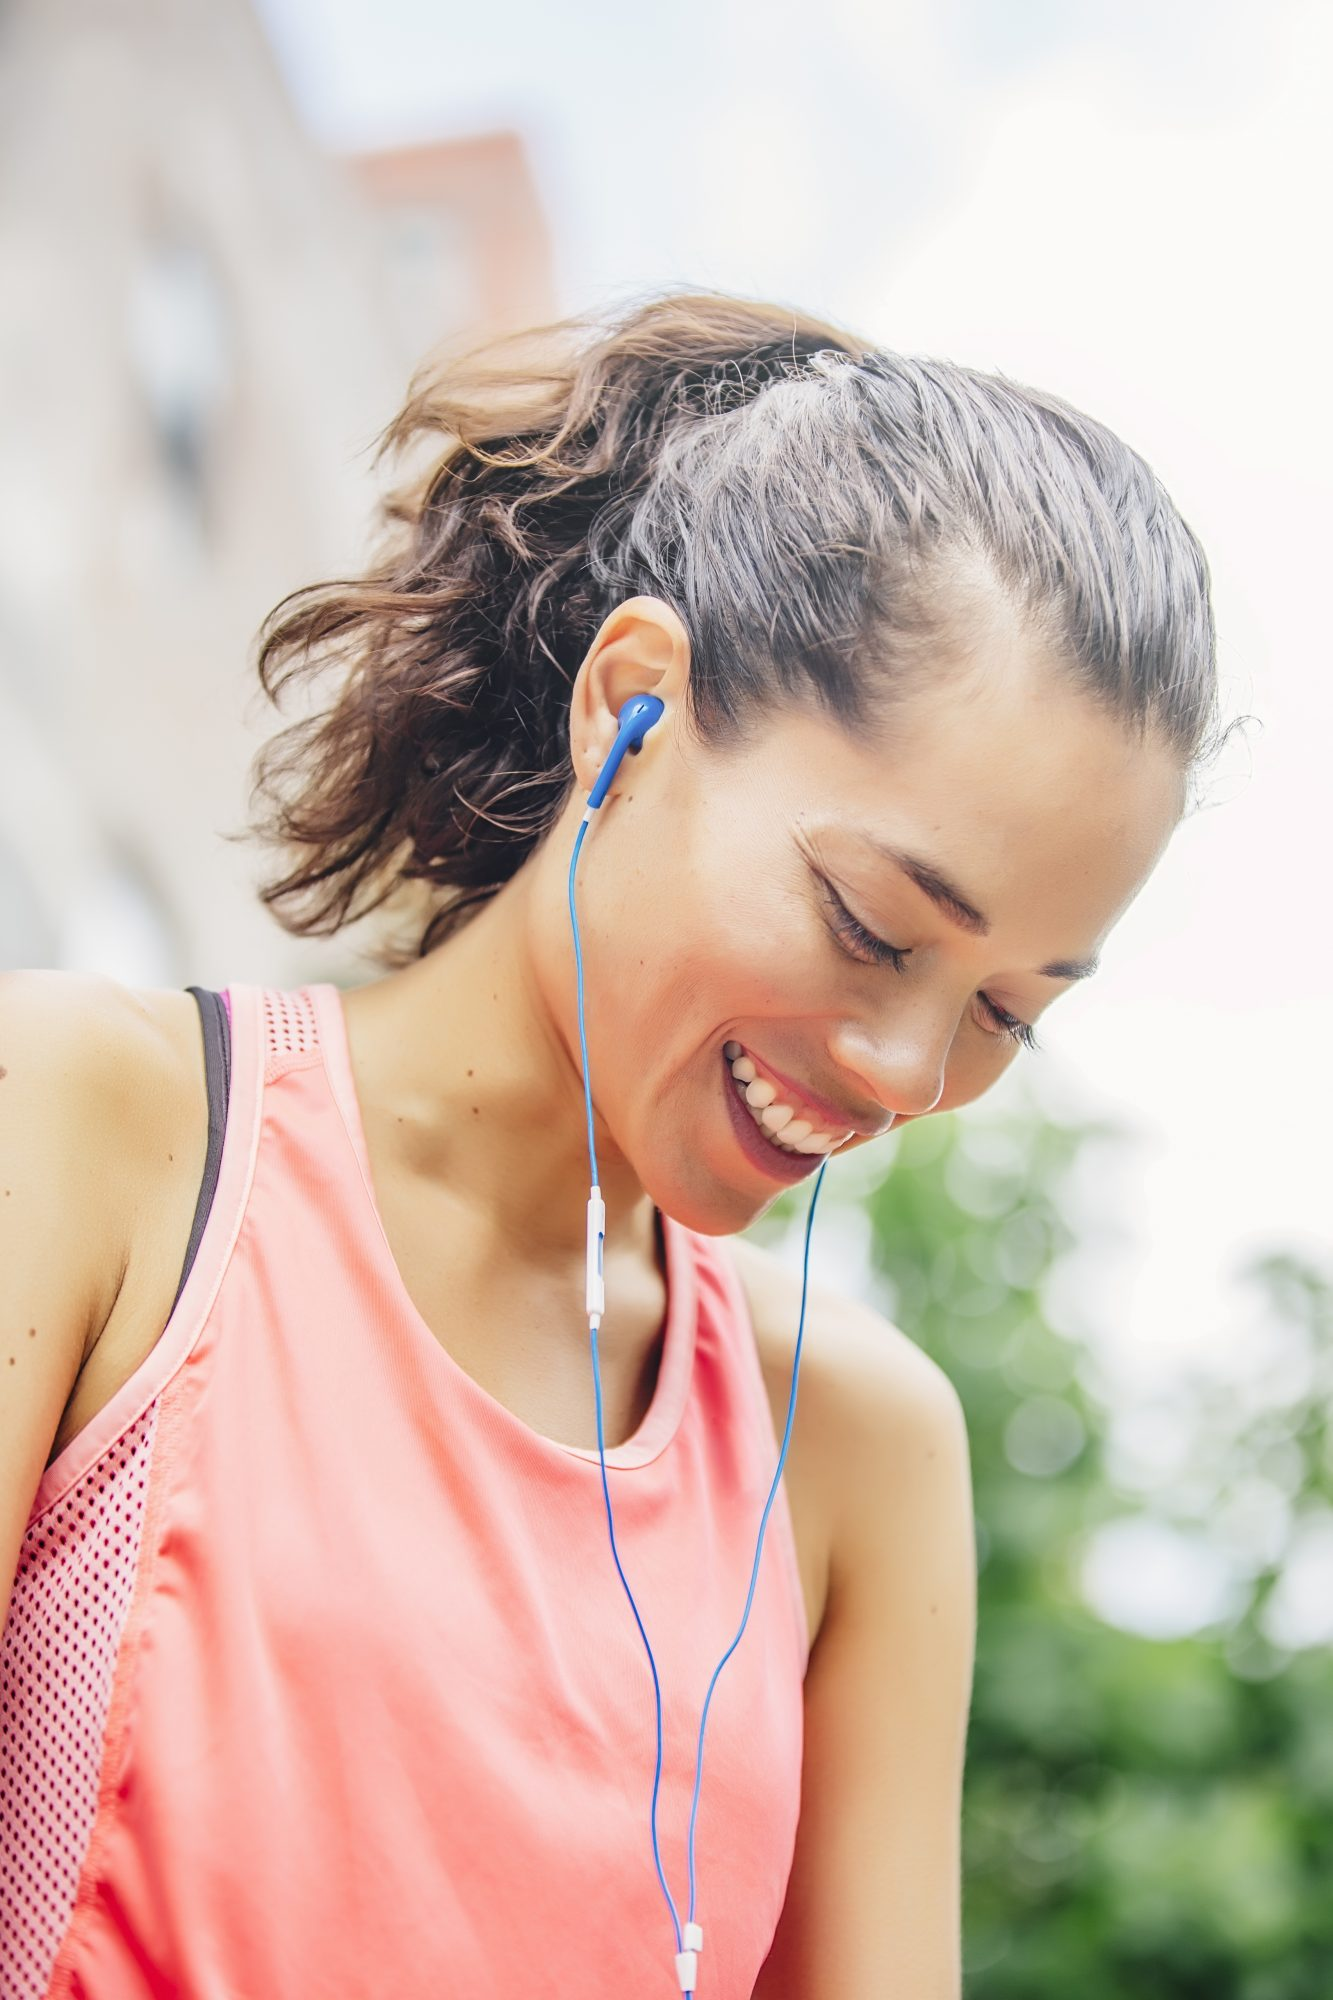 headphones-music-exercise-workout